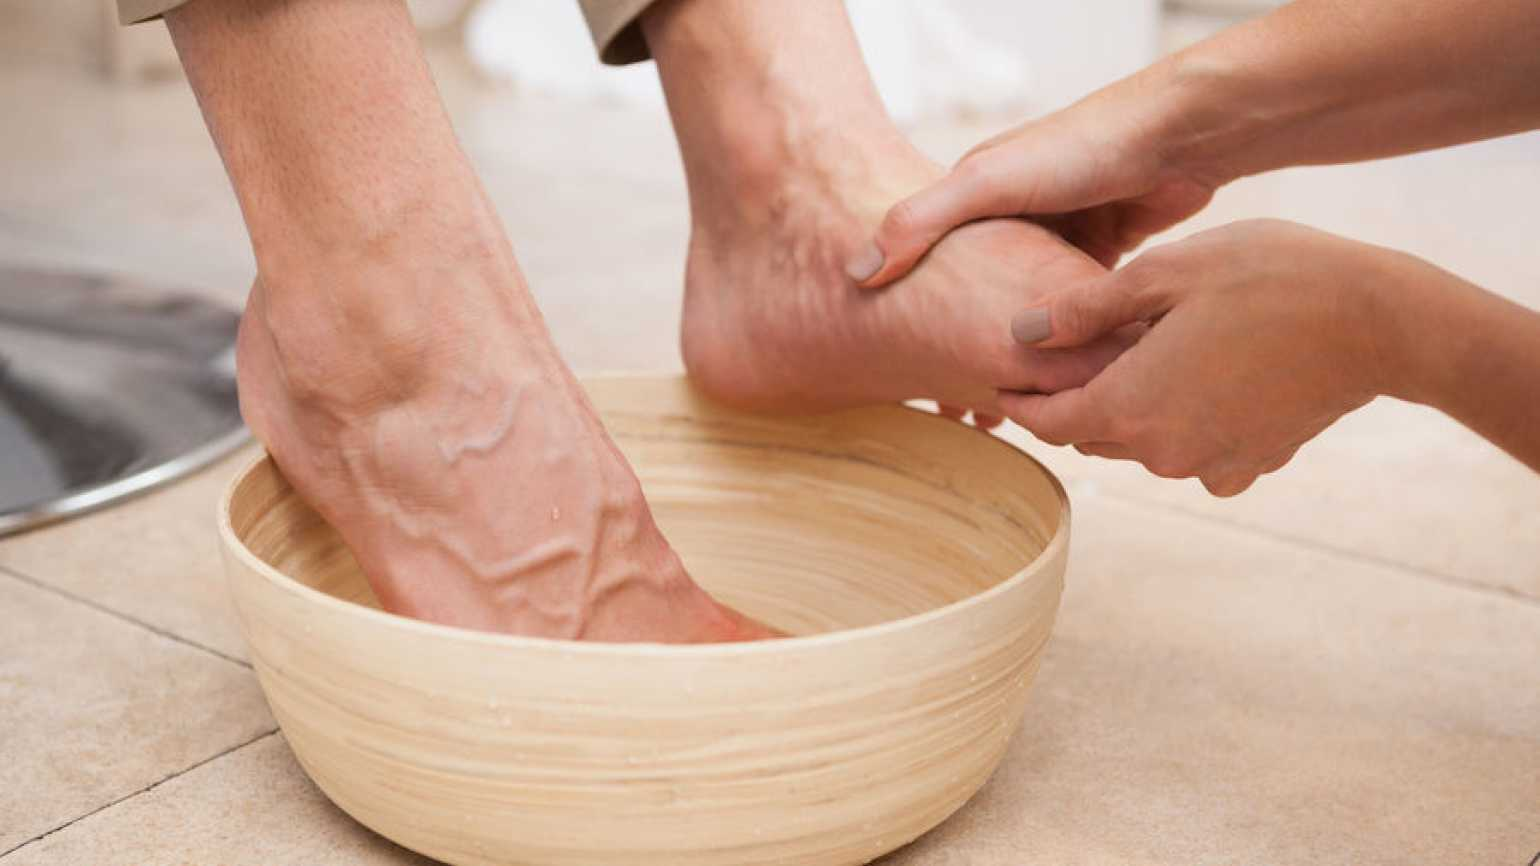 A woman's foot being washed. Photo from 123RF(r).